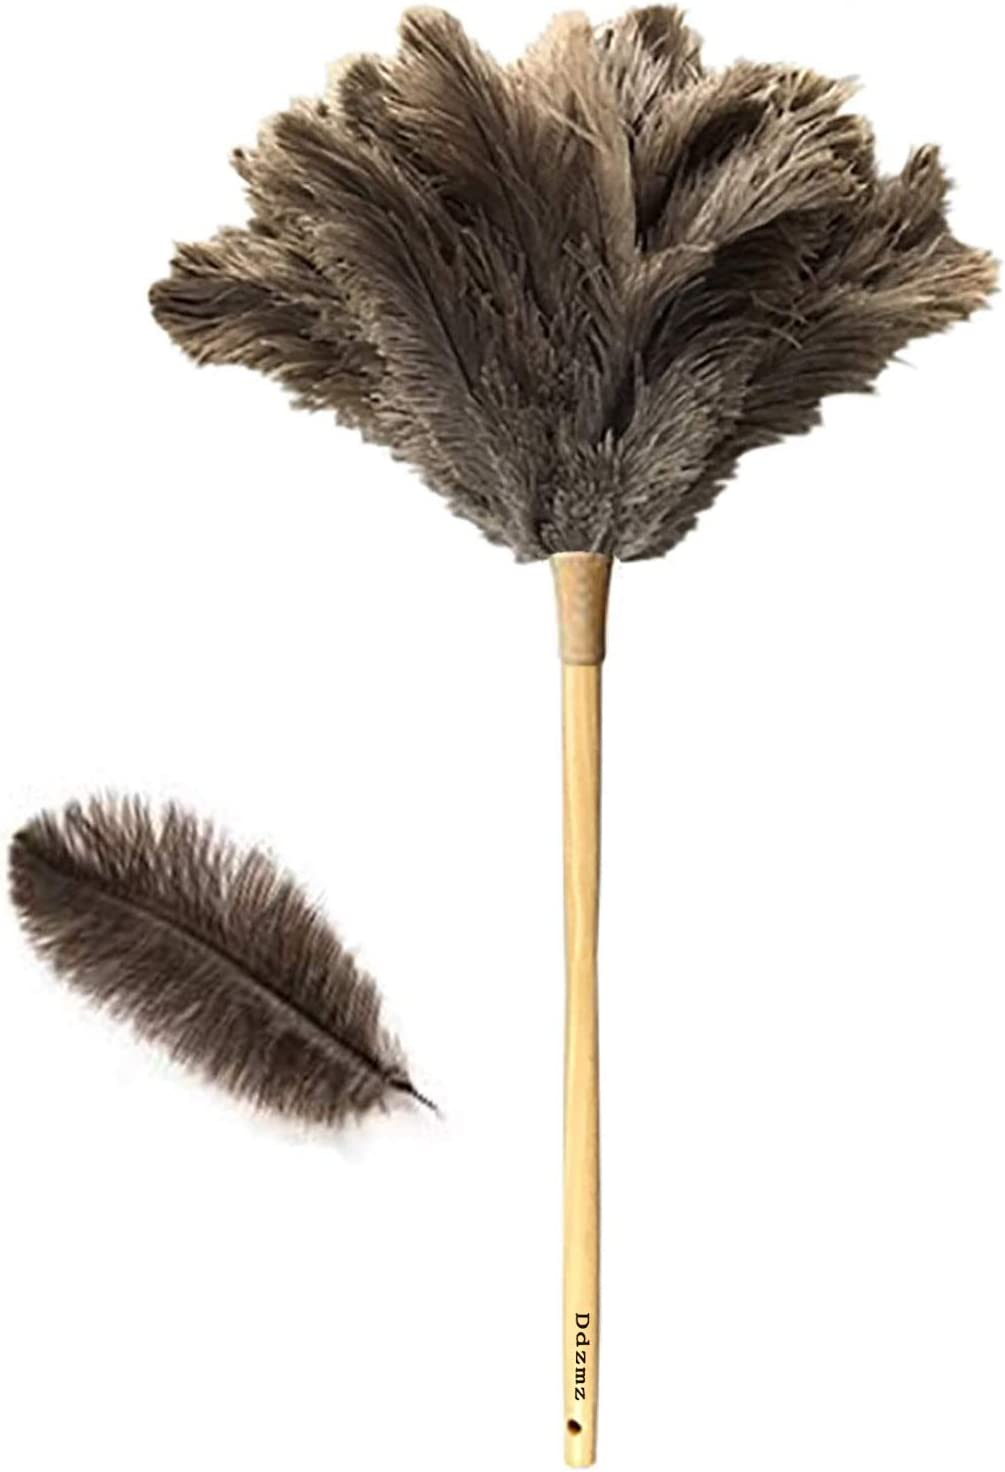 Feather Duster for Home Natural NEW before selling O Genuine Fluffy sold out